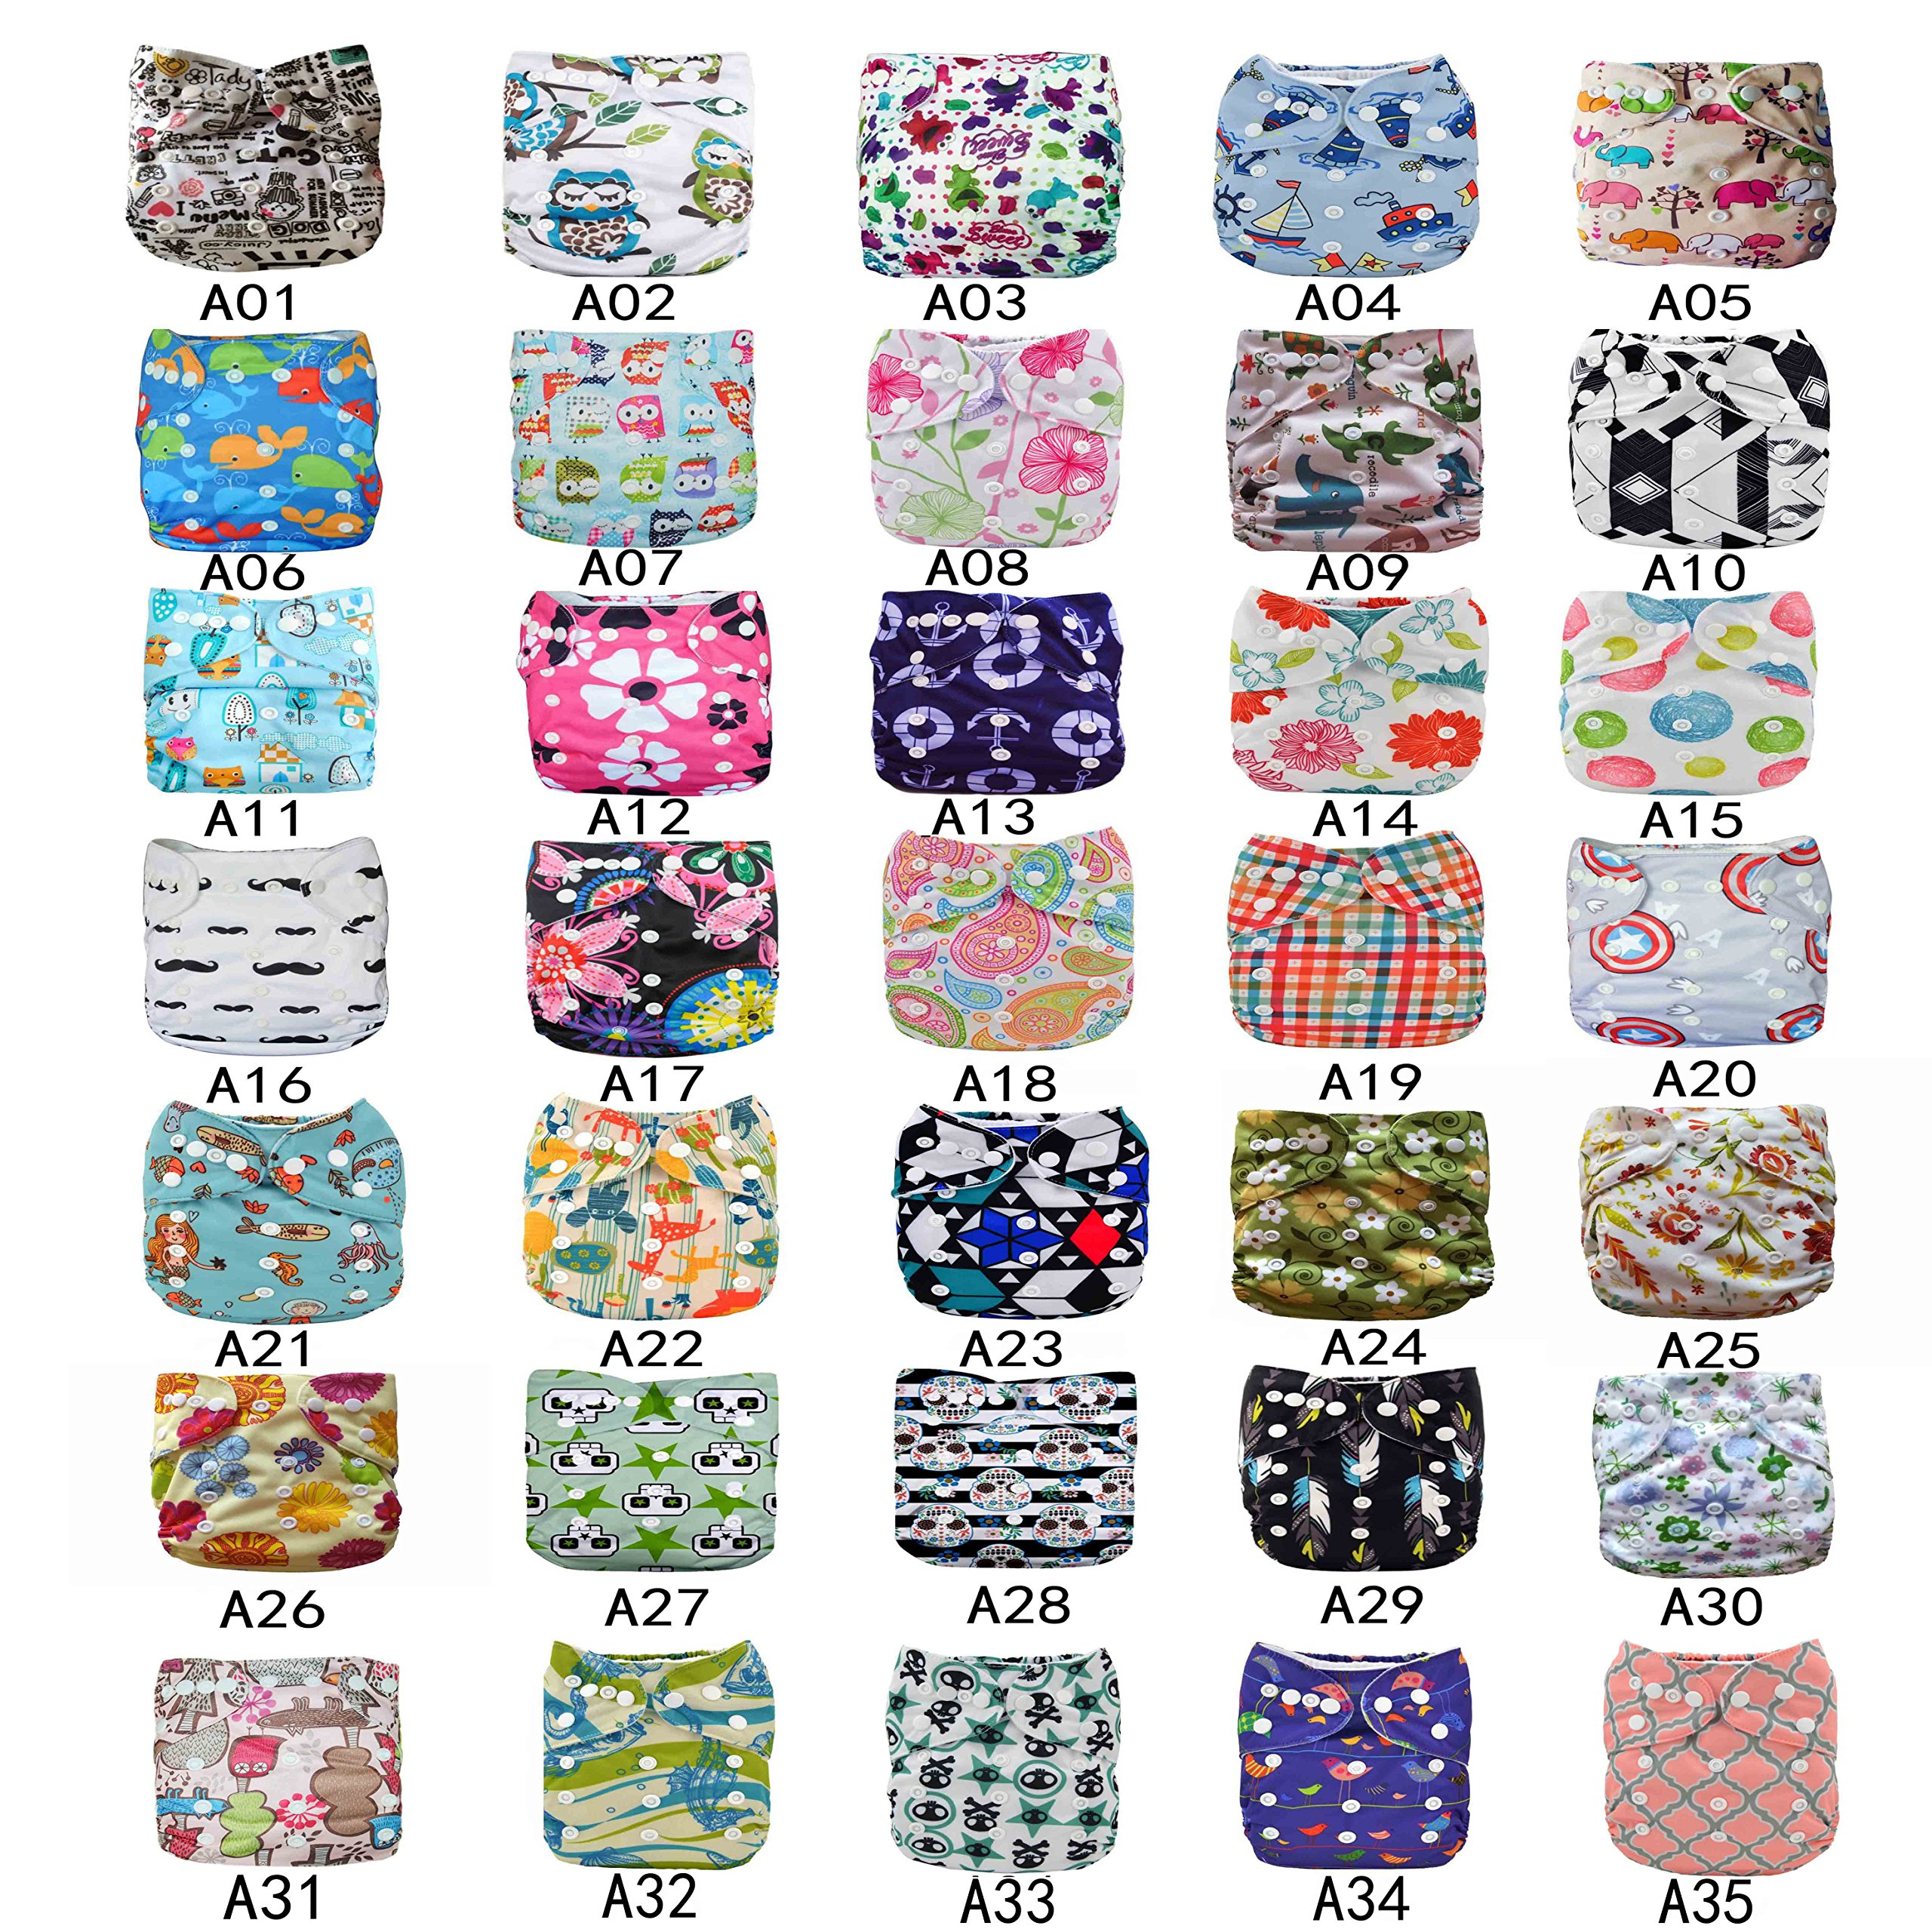 LilBit U Pick Reusable Baby Cloth Diaper(Please email us the color you want ) (with bamboo charcoal inserts, 15 diapers + 15 inserts) by LilBit (Image #1)